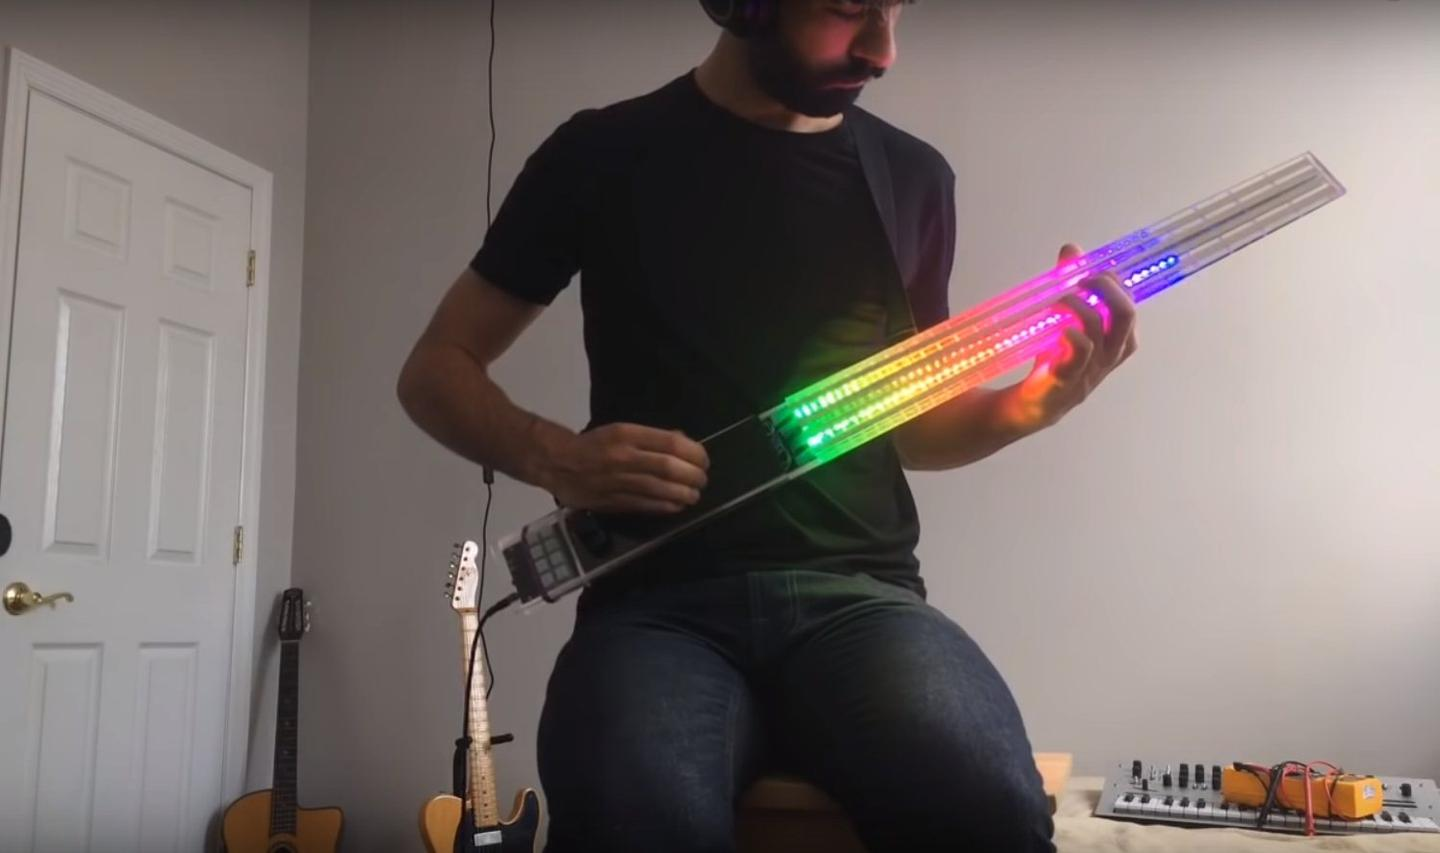 The FM Synth Bass has 120 addressable LEDs embedded in the neck